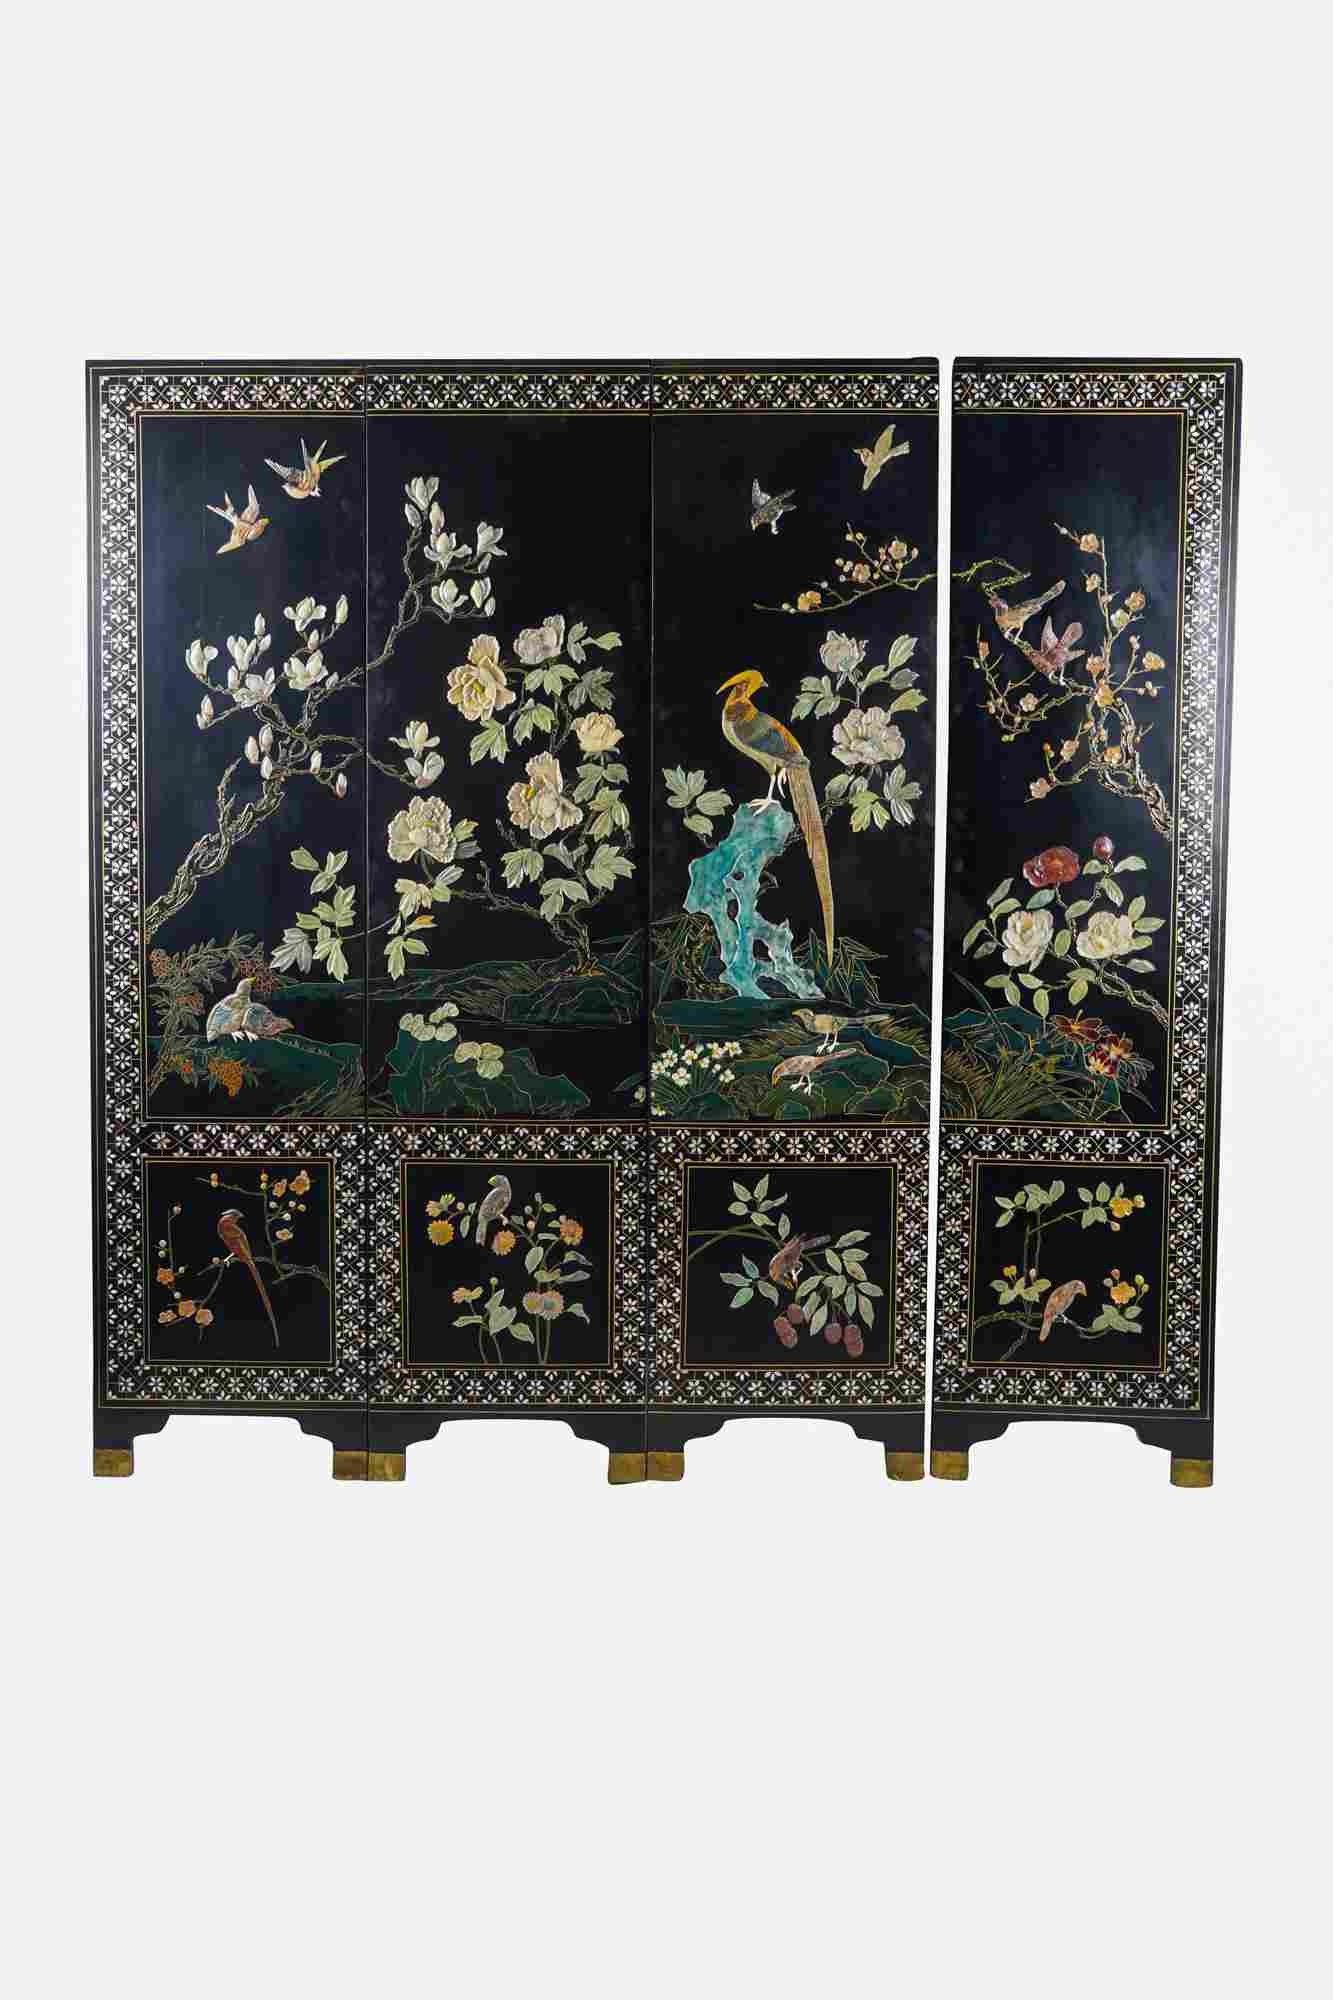 FOUR-PANEL CHINESE HARDSTONE SCREEN